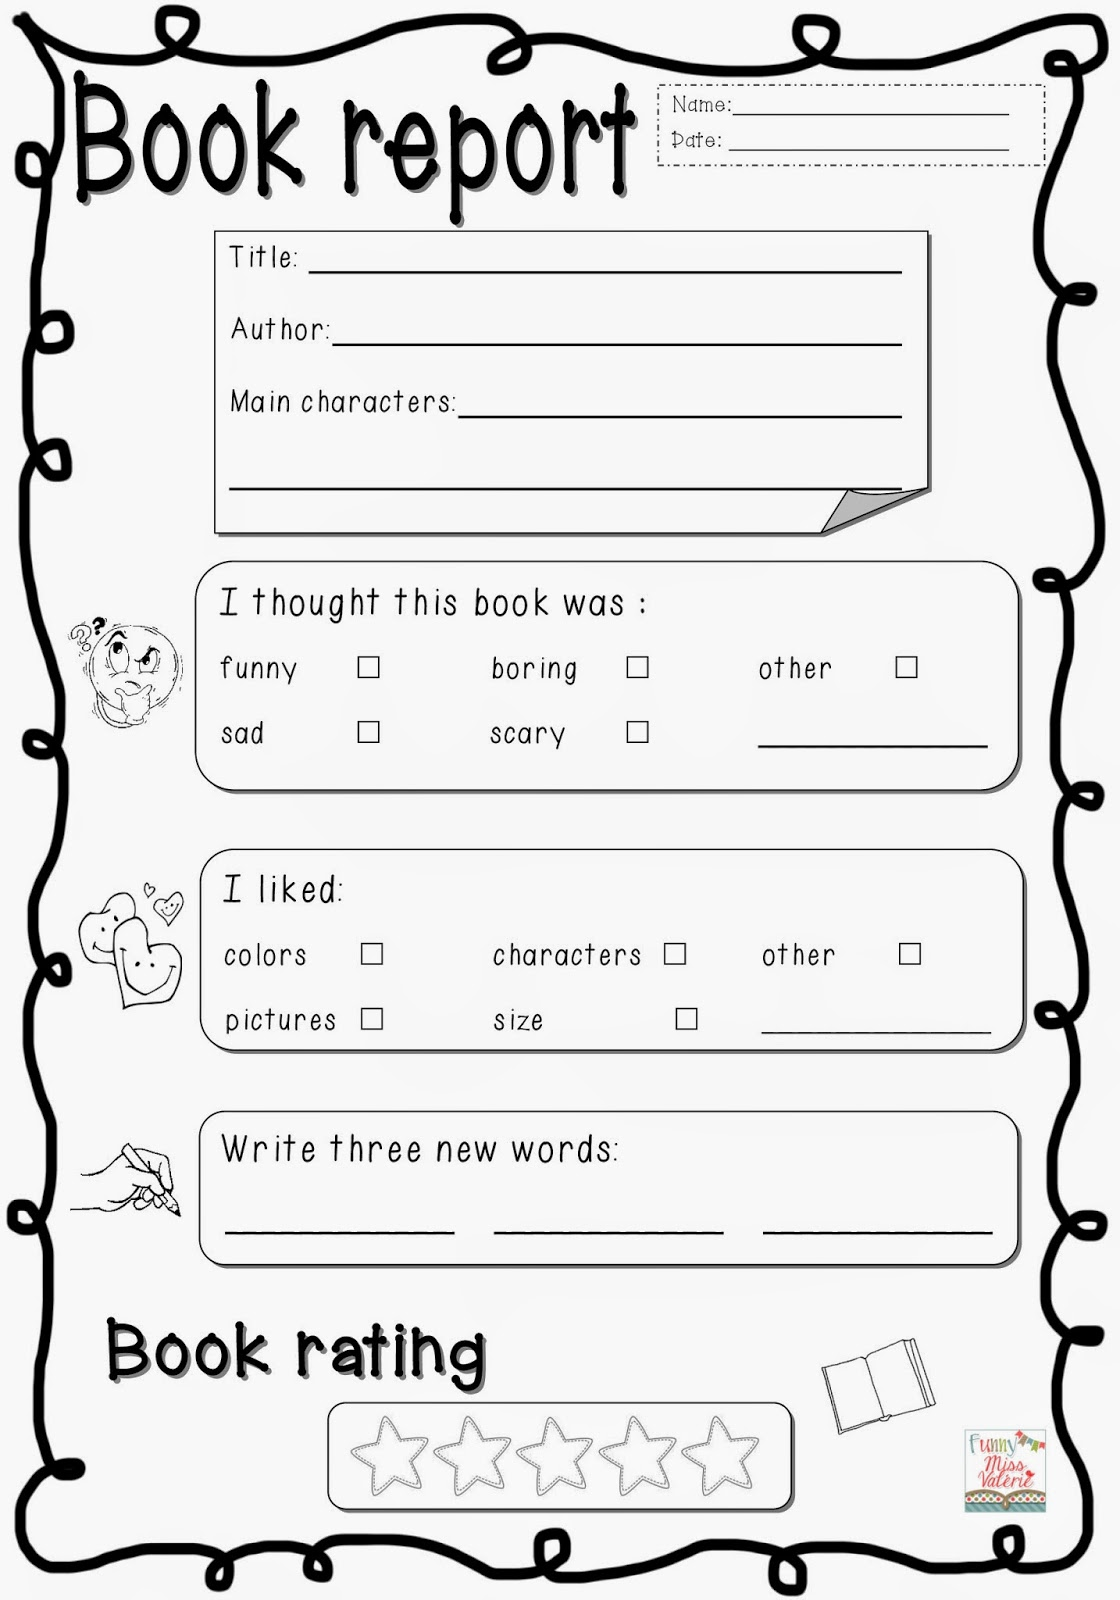 Outline writing book report 4th grade buy cheap paperbacks online ...